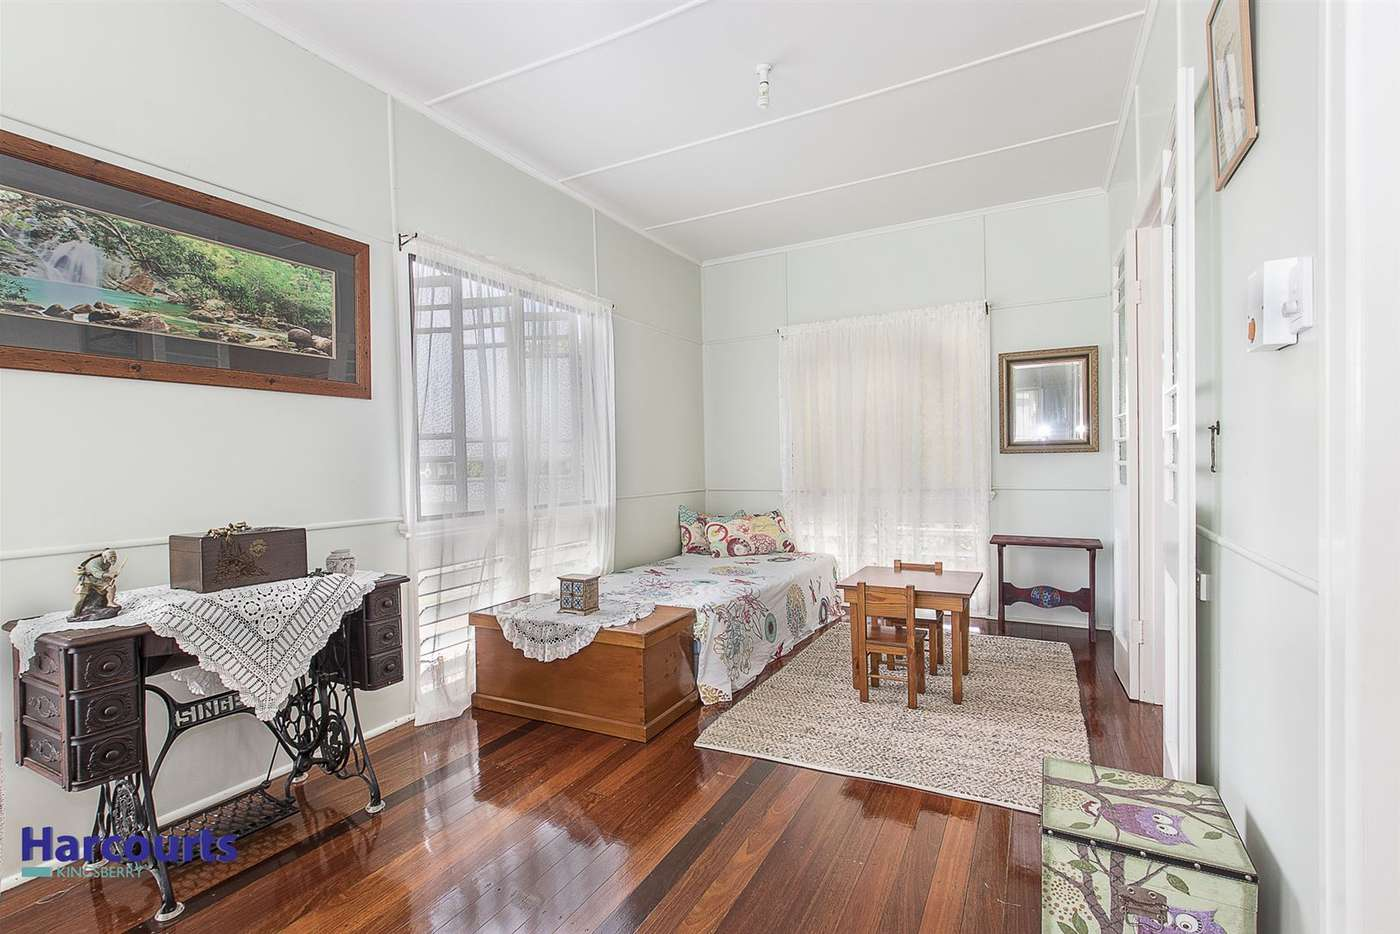 Seventh view of Homely house listing, 23 Queens Road, Railway Estate QLD 4810